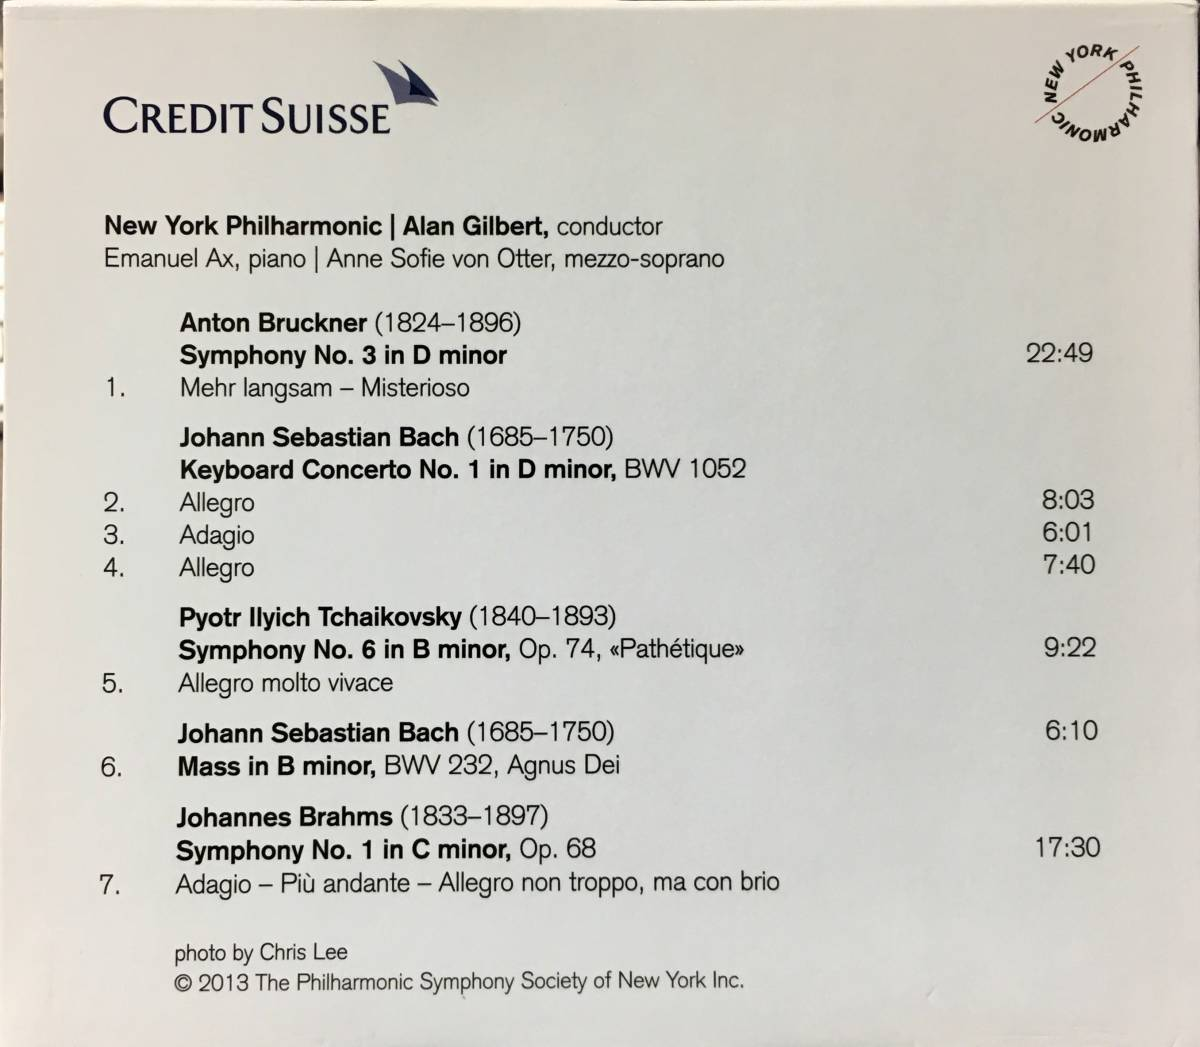 (Z0H)★レア盤/CREDIT SUISSE/2013-14 Your Gift from Alan Gilbert & The Newyork Philharmonic/Emanuel Ax/Anne Sofie von Otter★_画像2